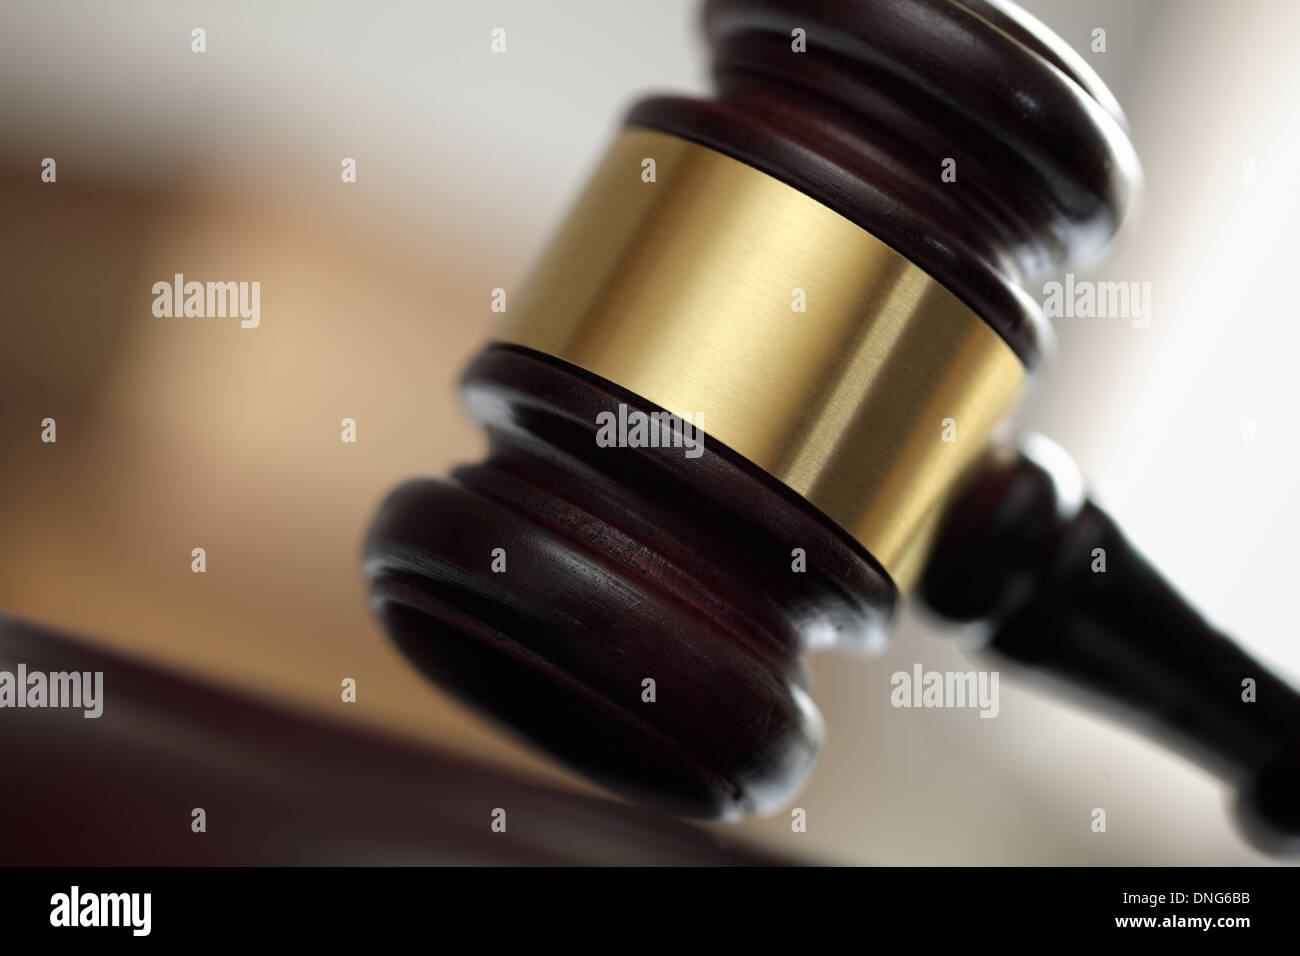 Gavel in court of law - Stock Image